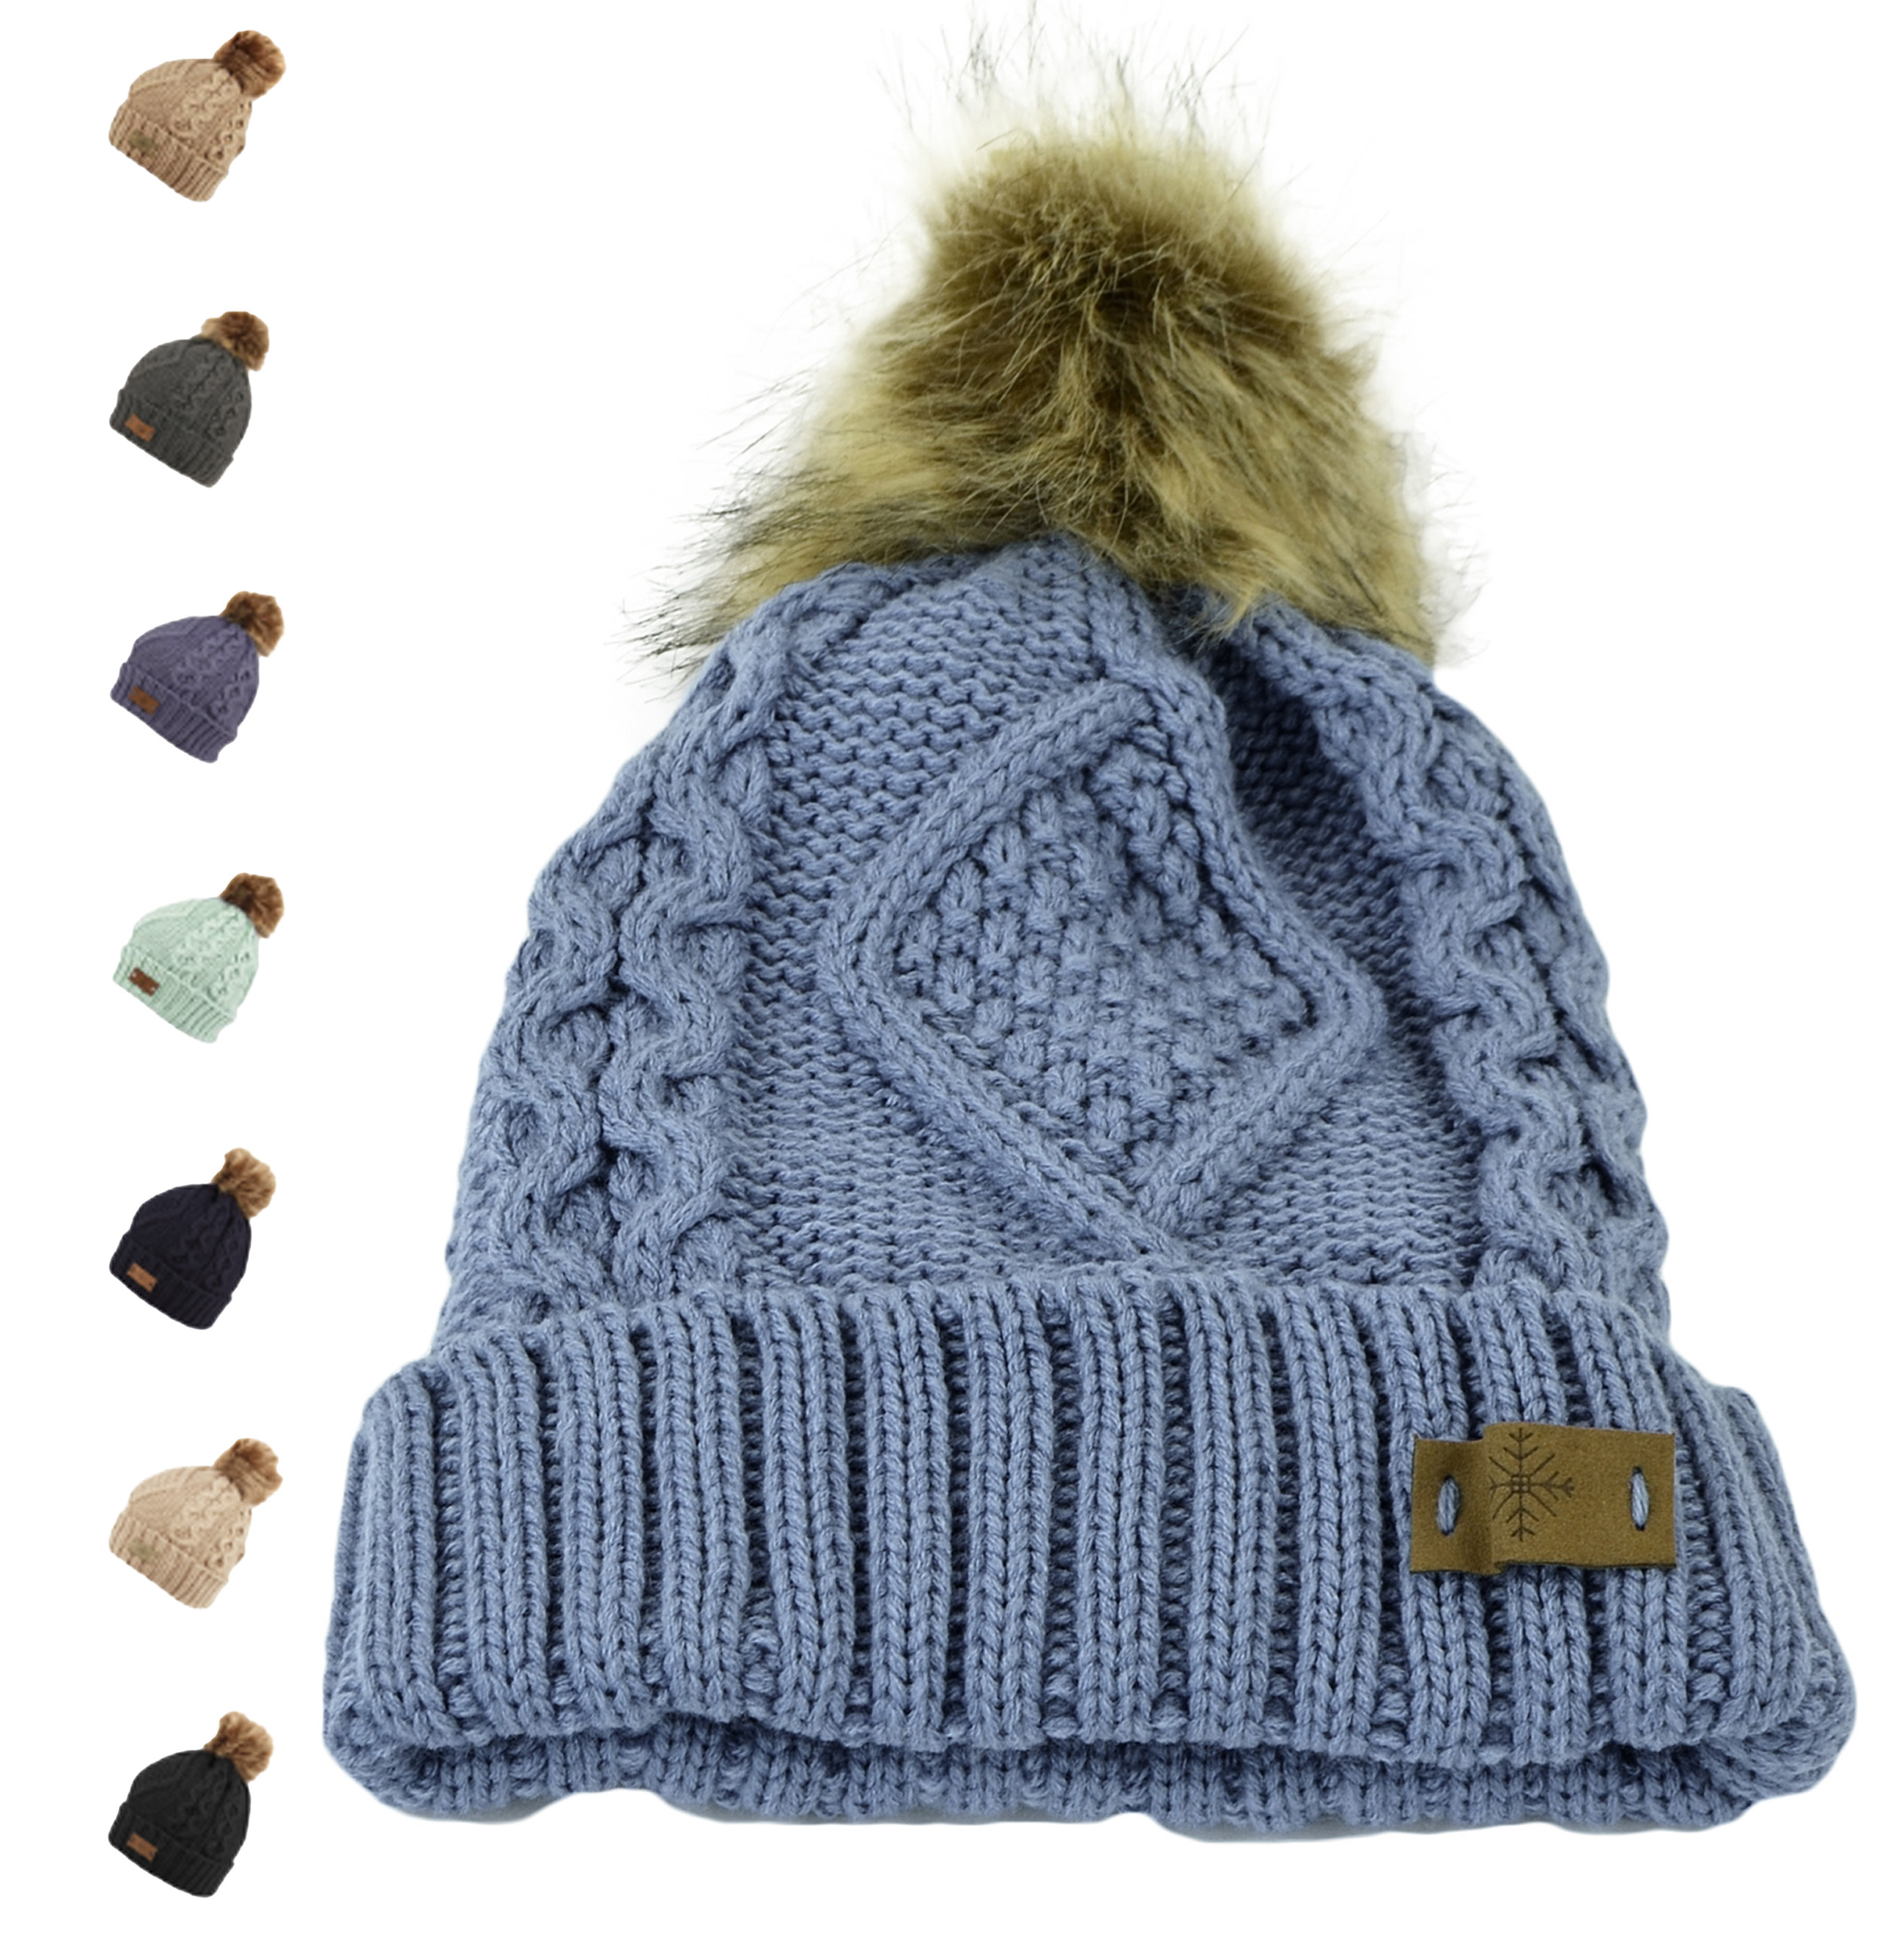 Belle Donne - Women's Winter Fleece Lined Cable Knitted Pom Pom Beanie Hat